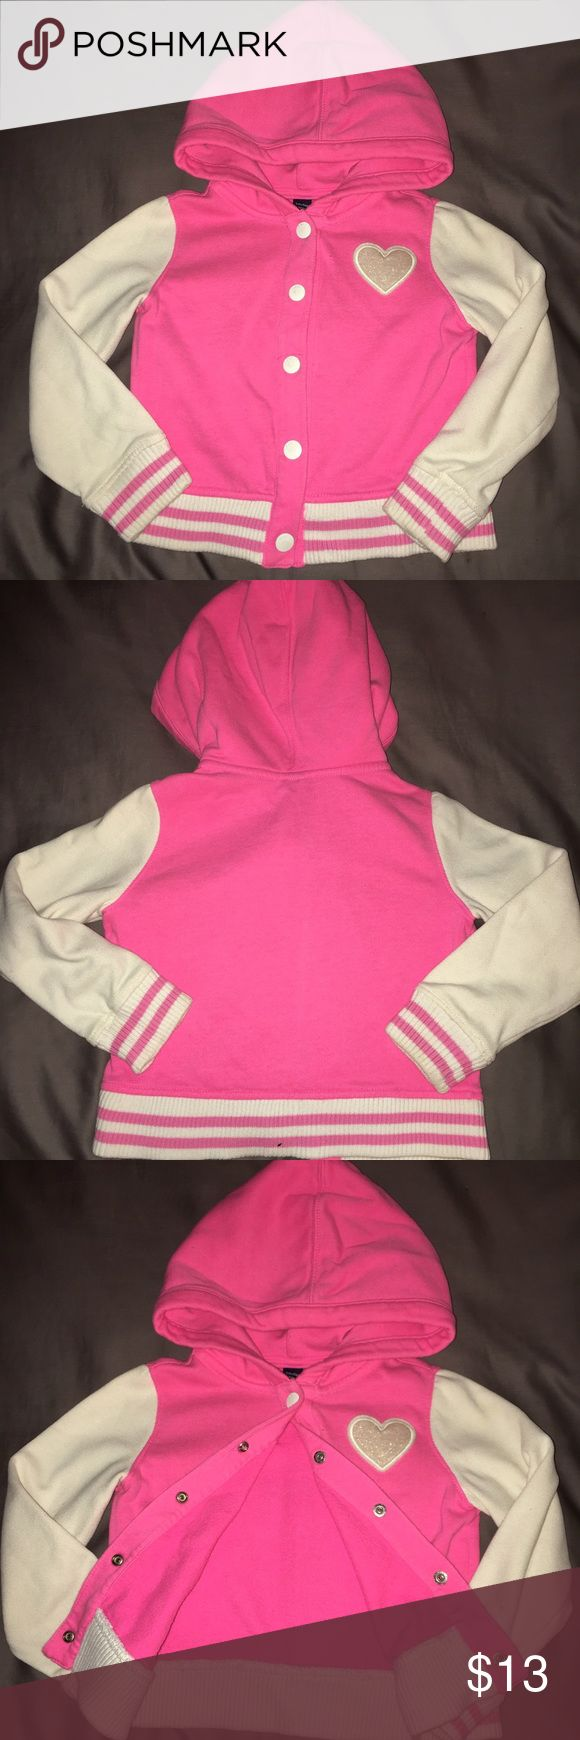 Baby GAP baseball jacket💕 Hooded sweatshirt baseball jacket with 💗. Waist and wrist bands are soft ribbed. Perfect alternative to early fall or spring jacket or layered under puffy vest. GAP Jackets & Coats